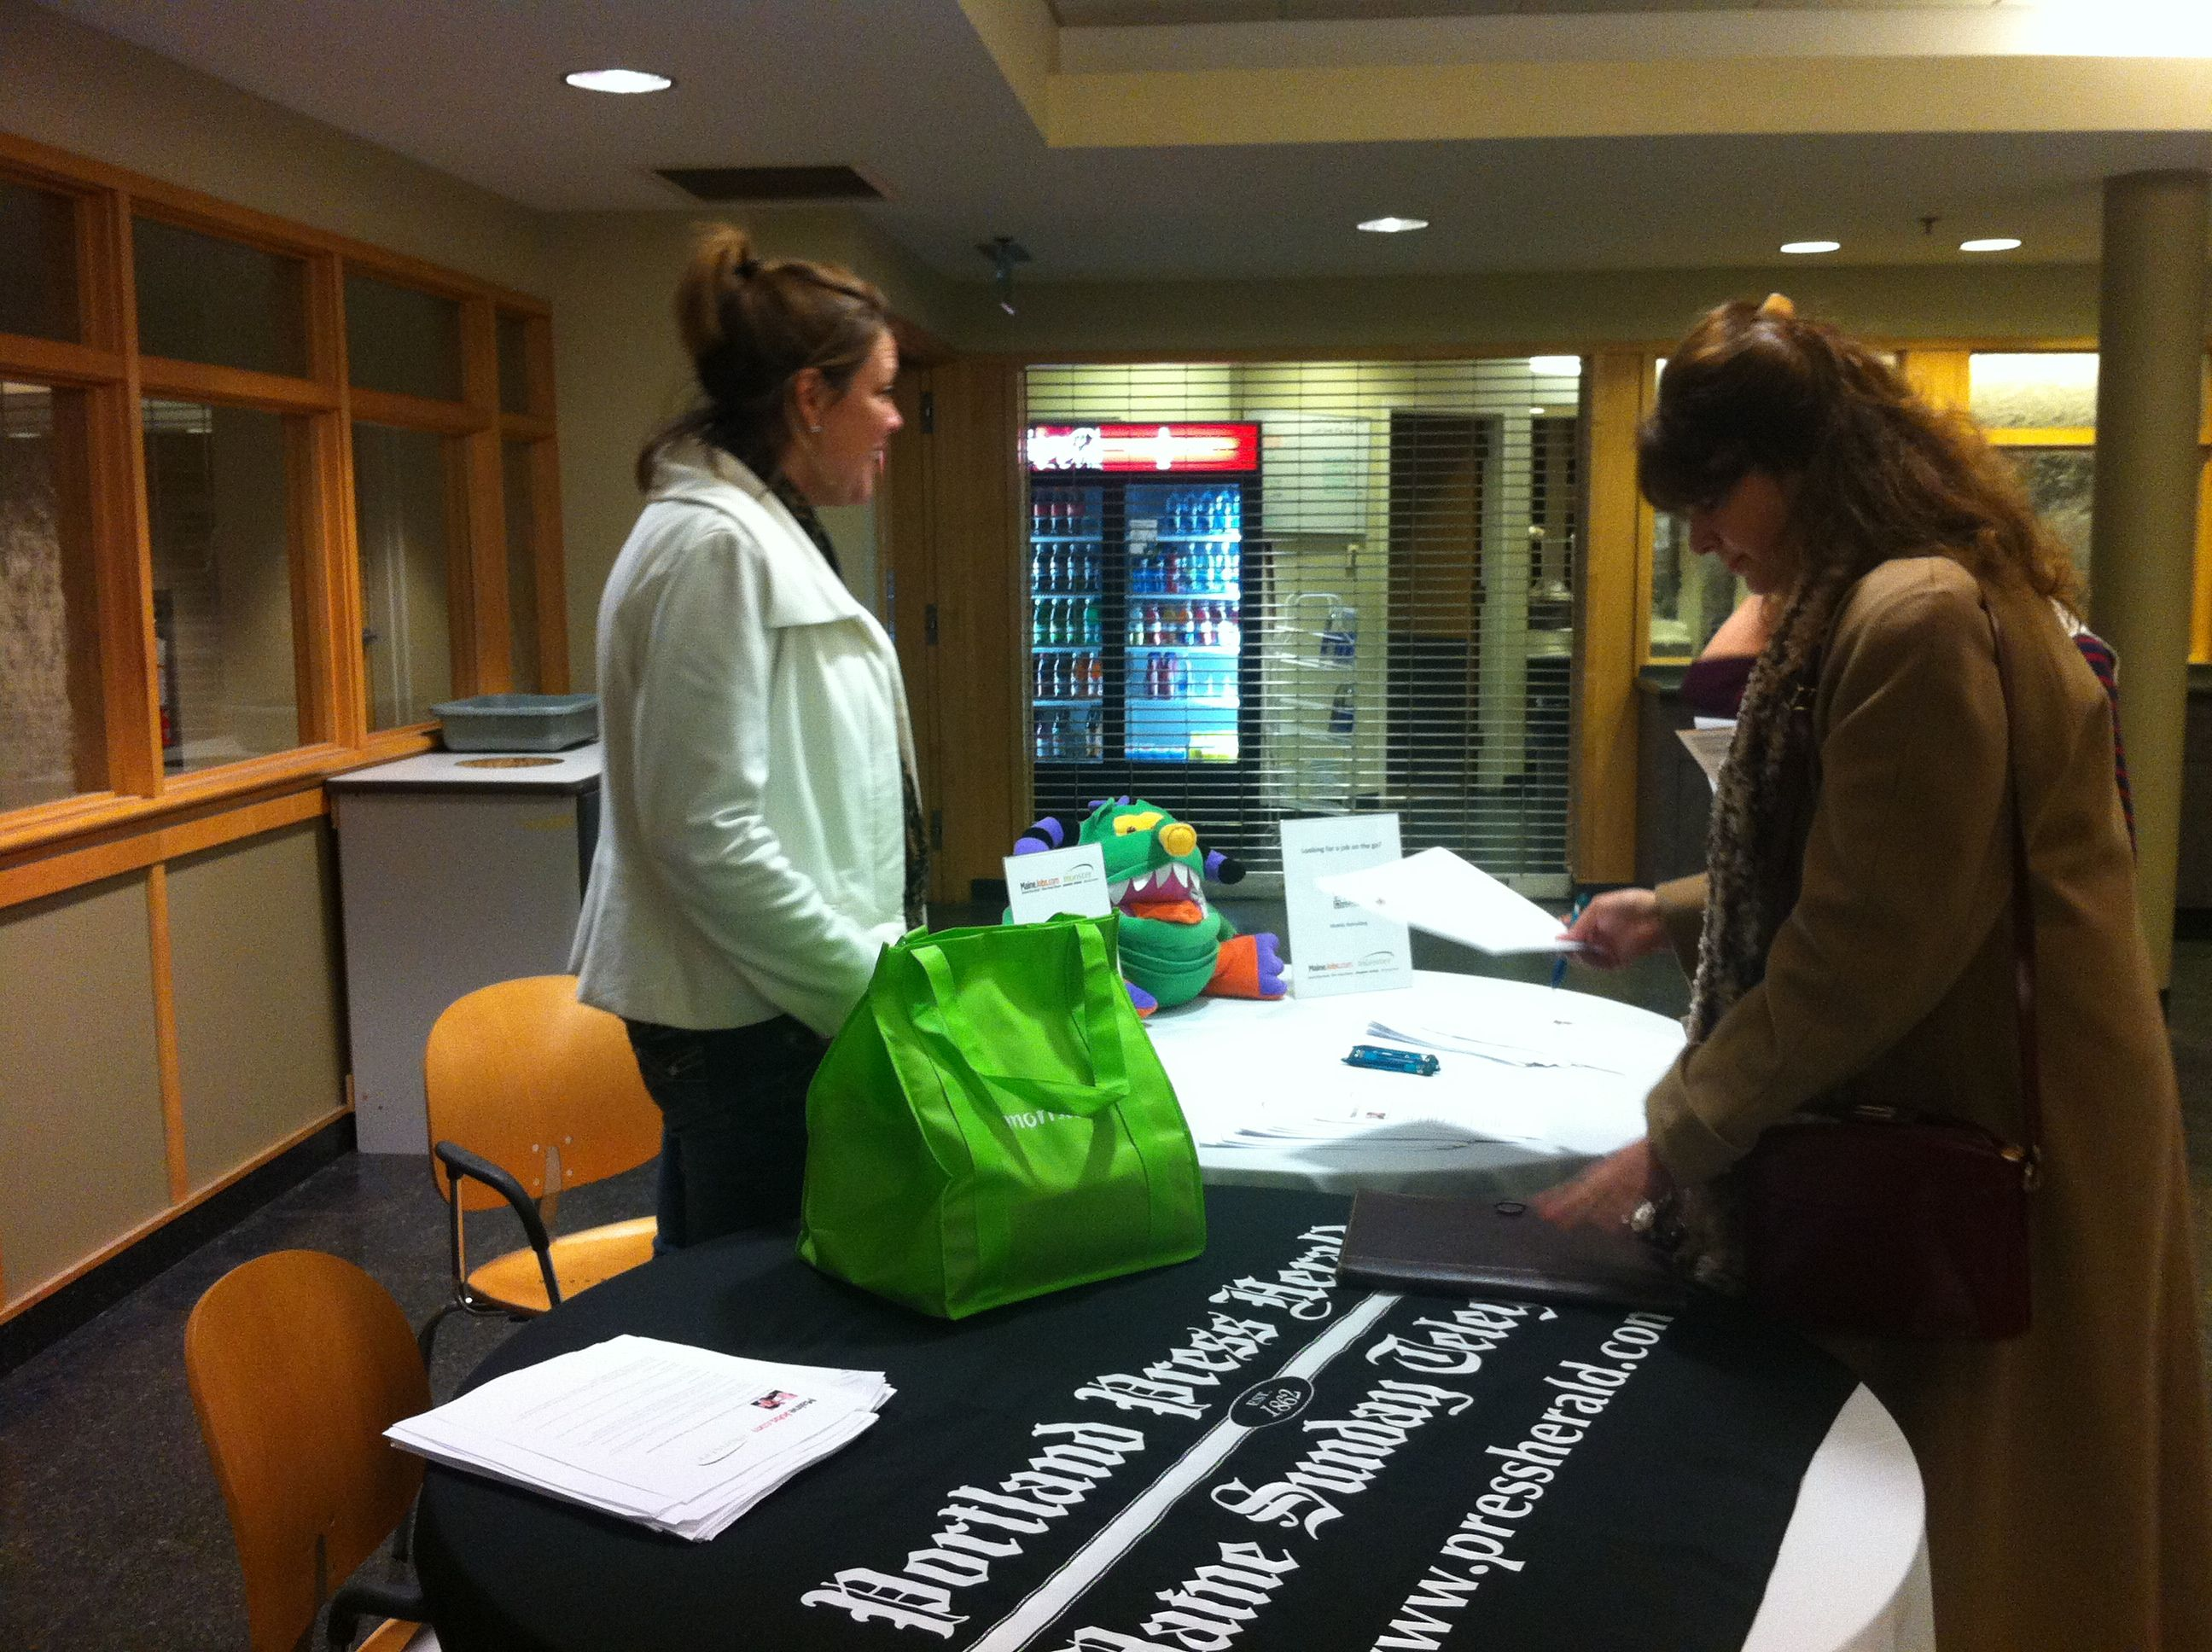 Medical Billing And Coding Job Fair Sponsored By Seacoast And The